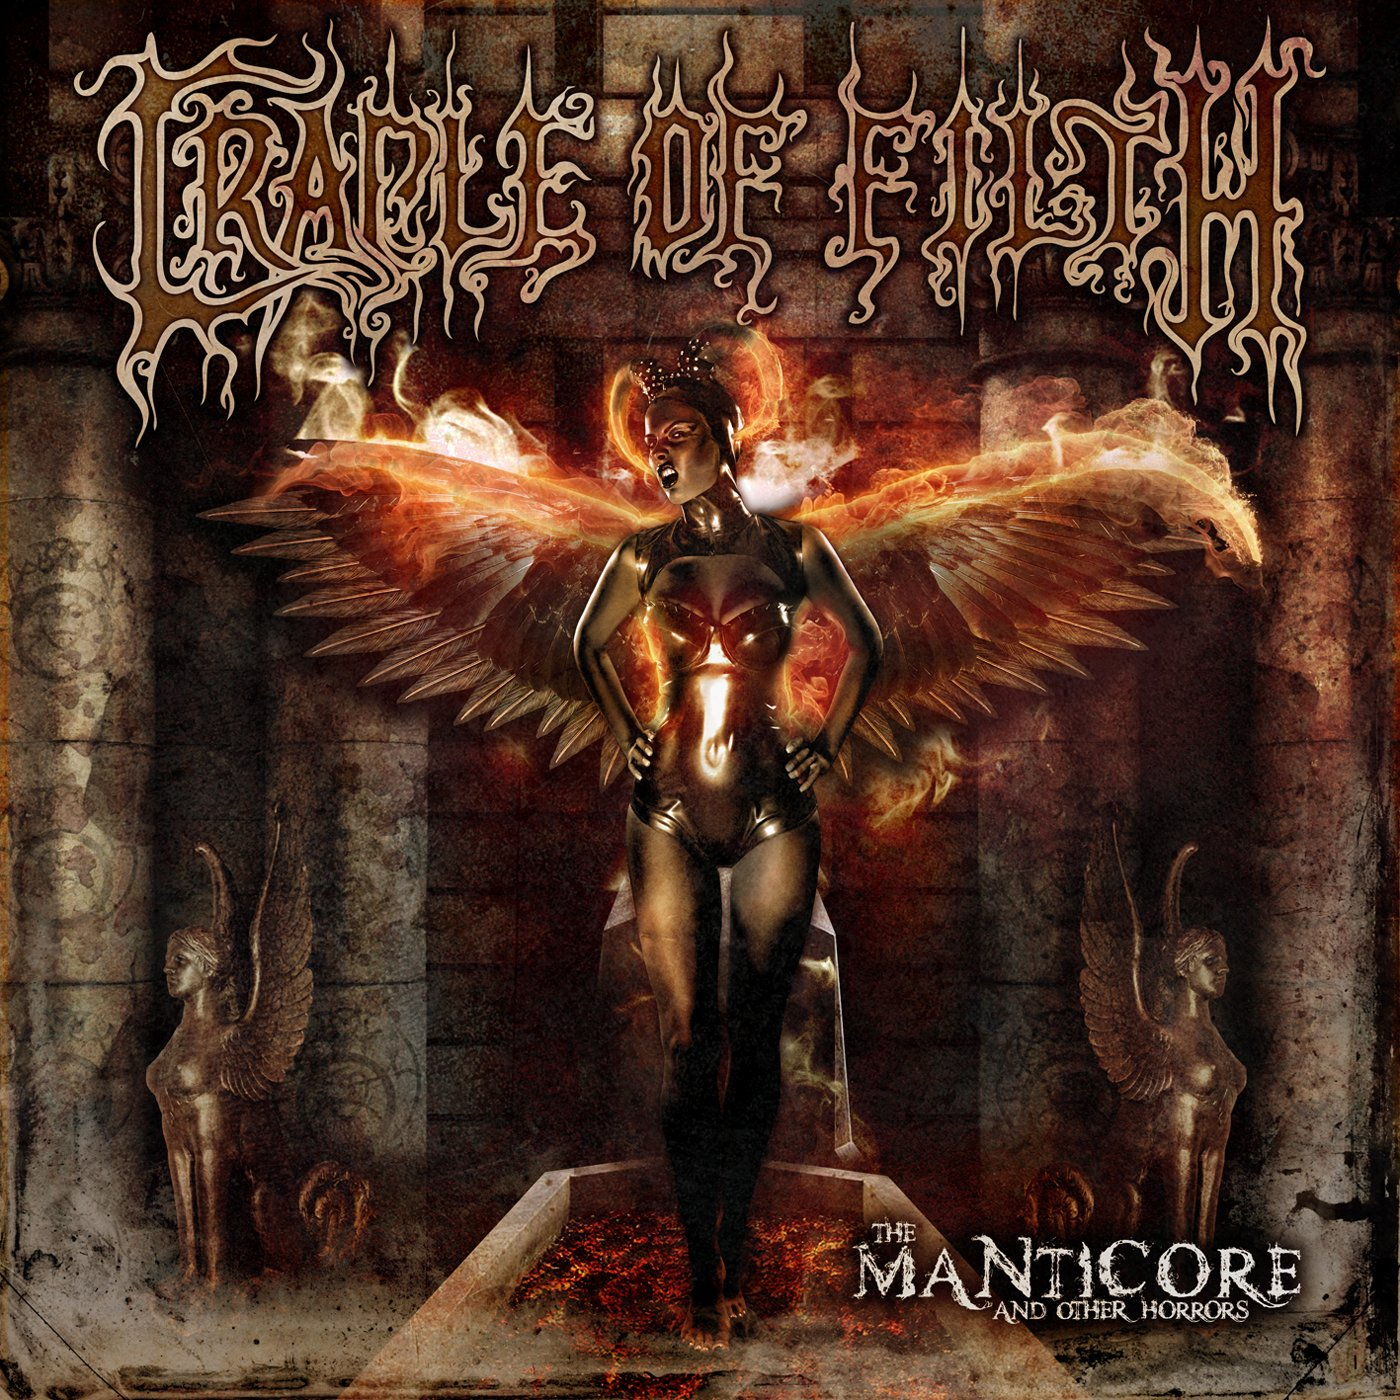 Cradle of Filth Covers Cradle of Filth The